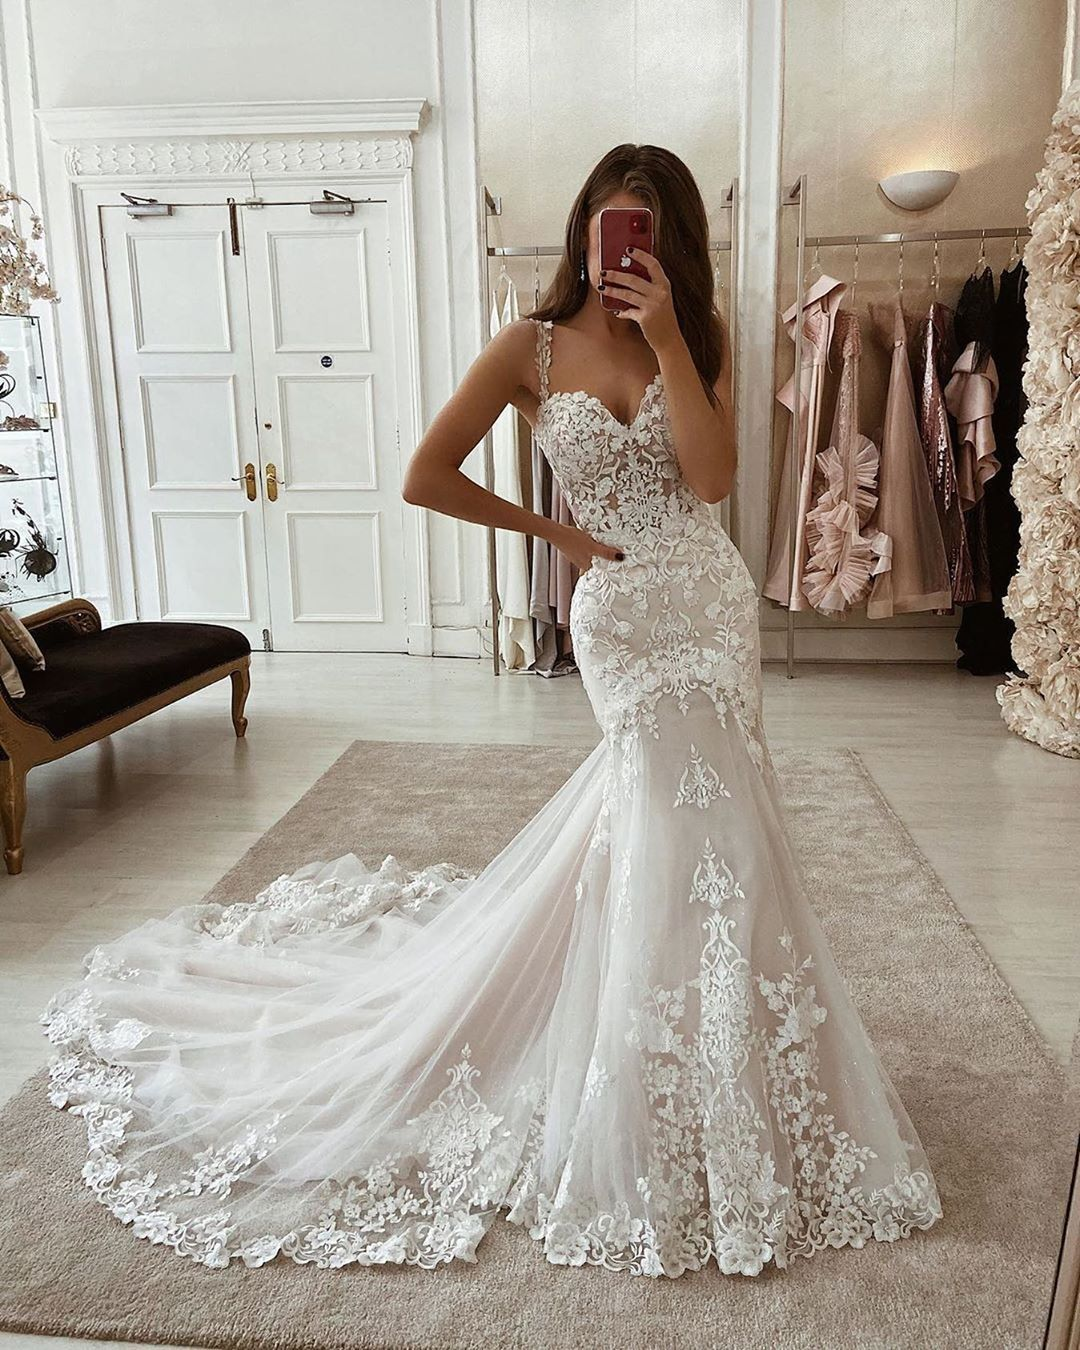 The Wedding Bliss On Instagram What A Gorgeous Dress By Essenseofaustralia In 2020 Lace Mermaid Wedding Dress Dream Wedding Dresses Mermaid Trumpet Wedding Dresses